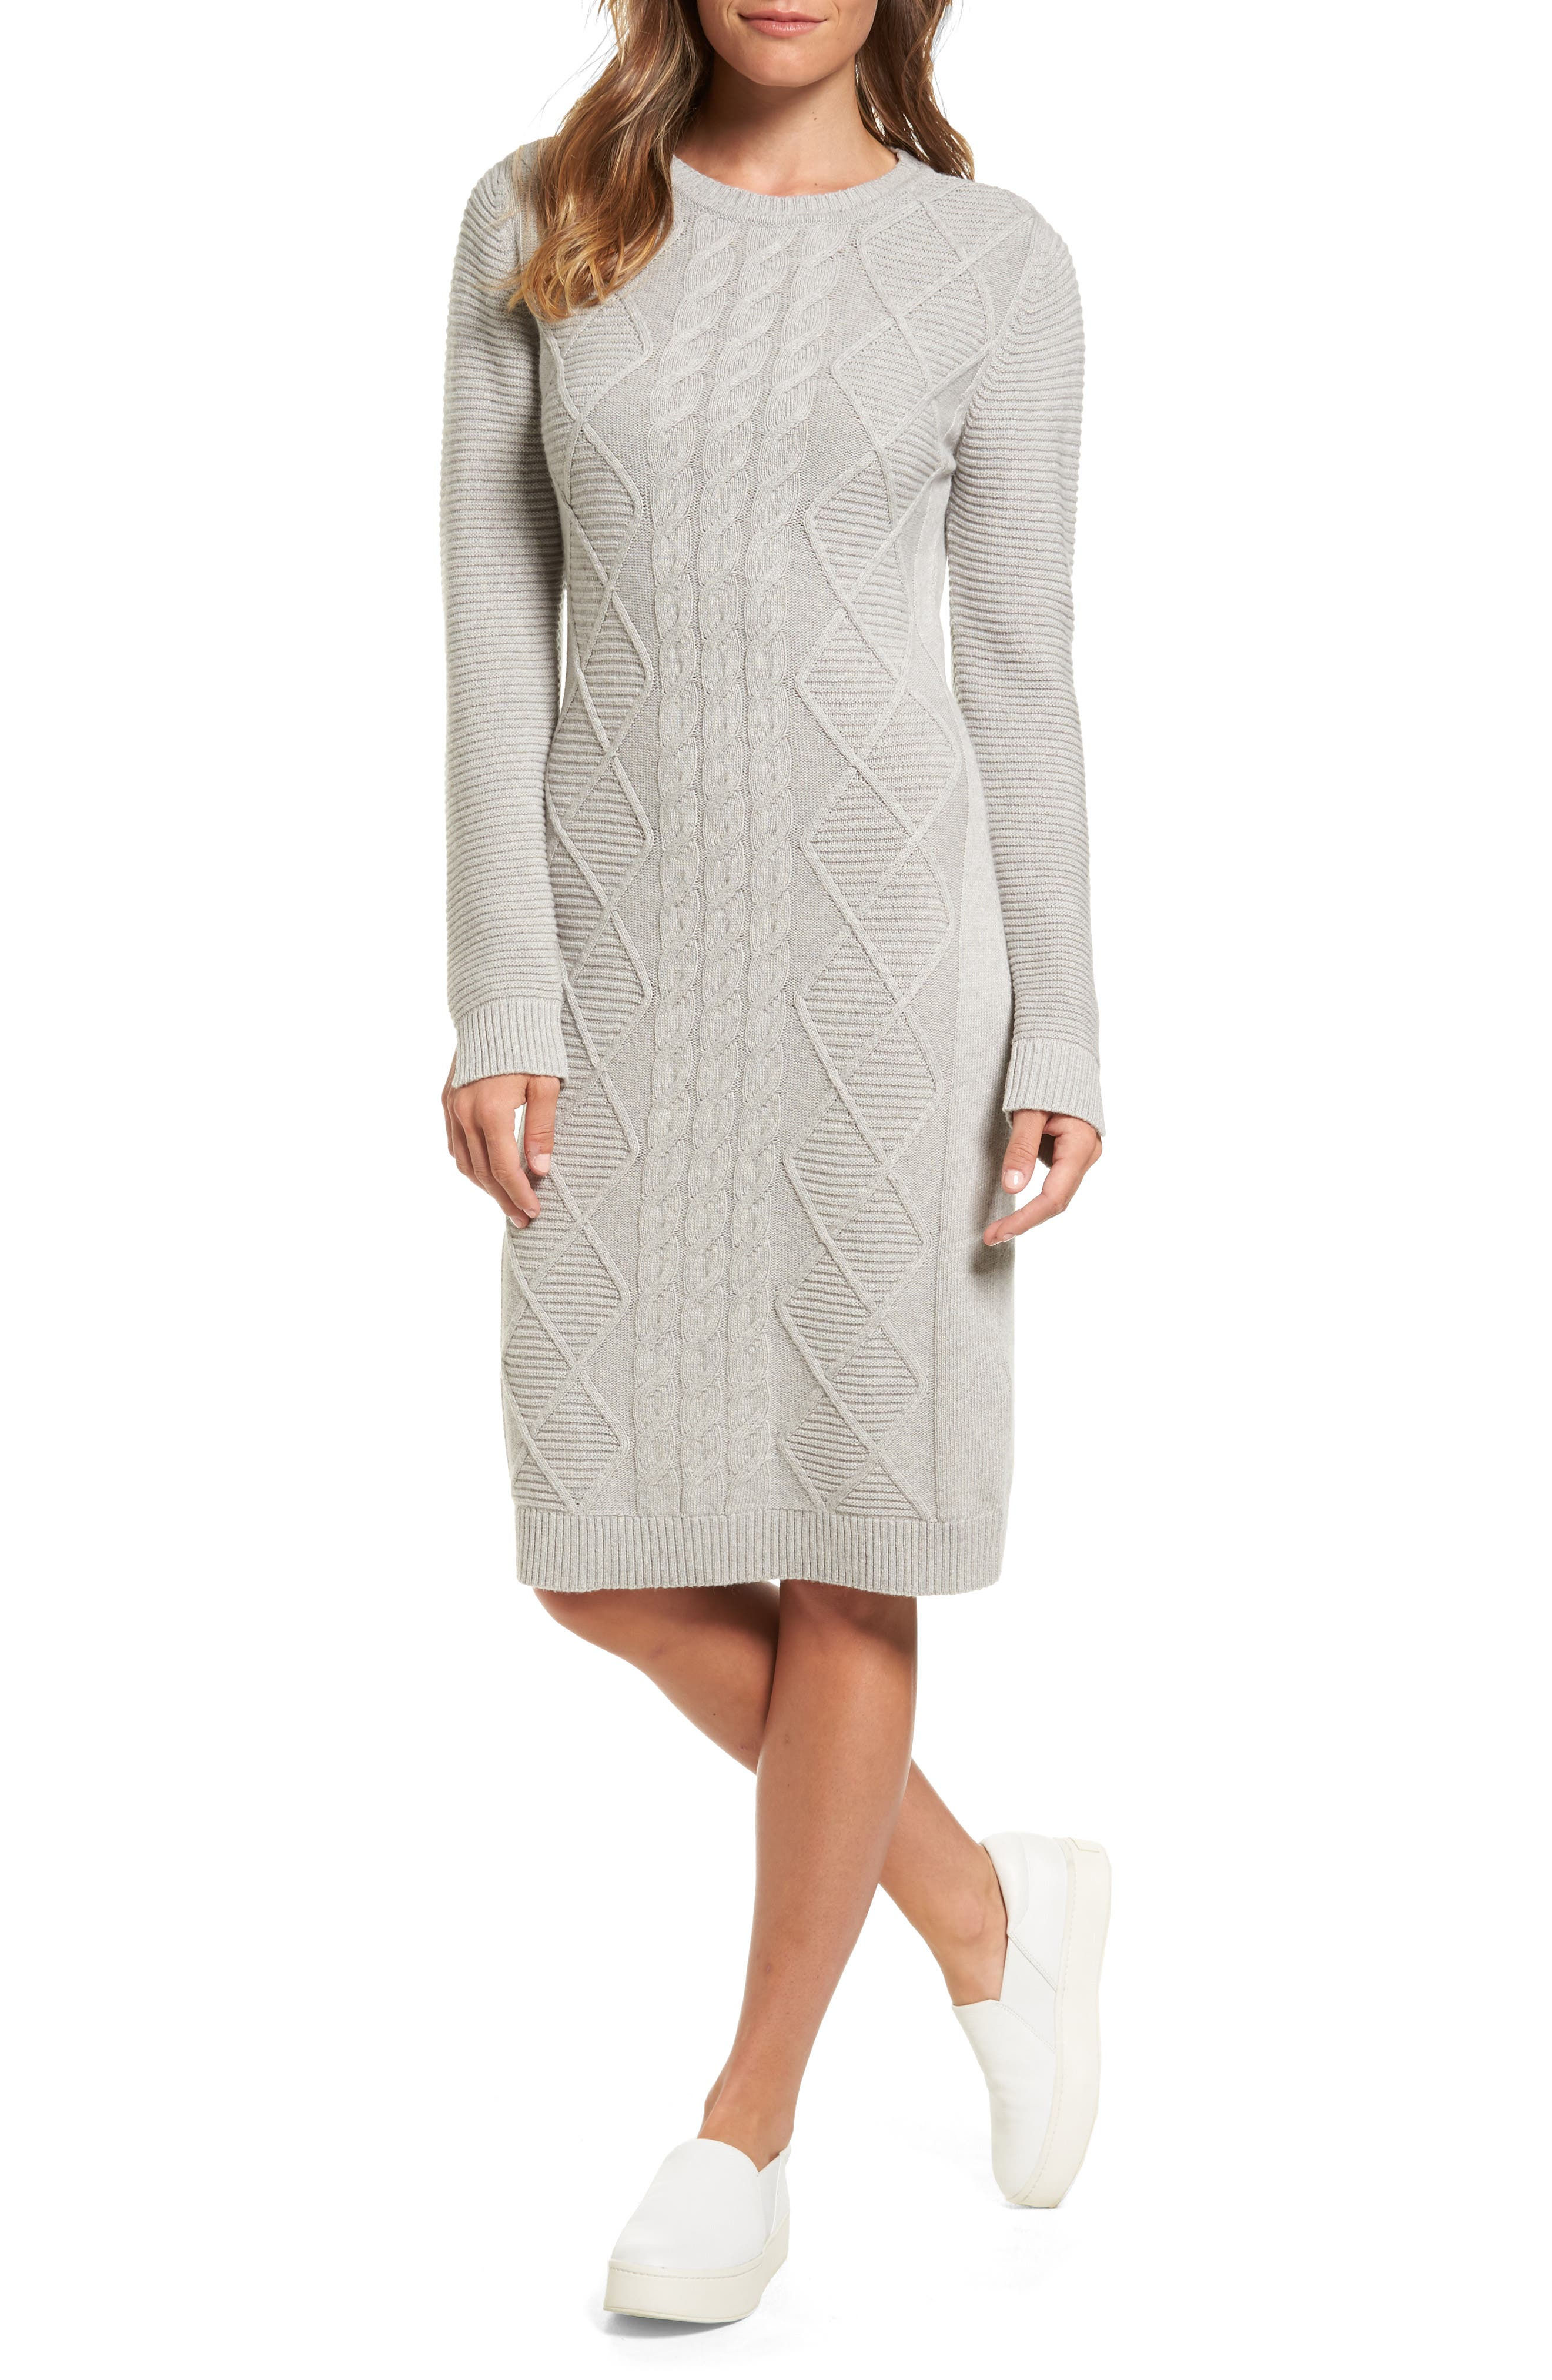 Alternate Image 1 Selected - Barbour Emmanuel Cable Knit Sweater Dress